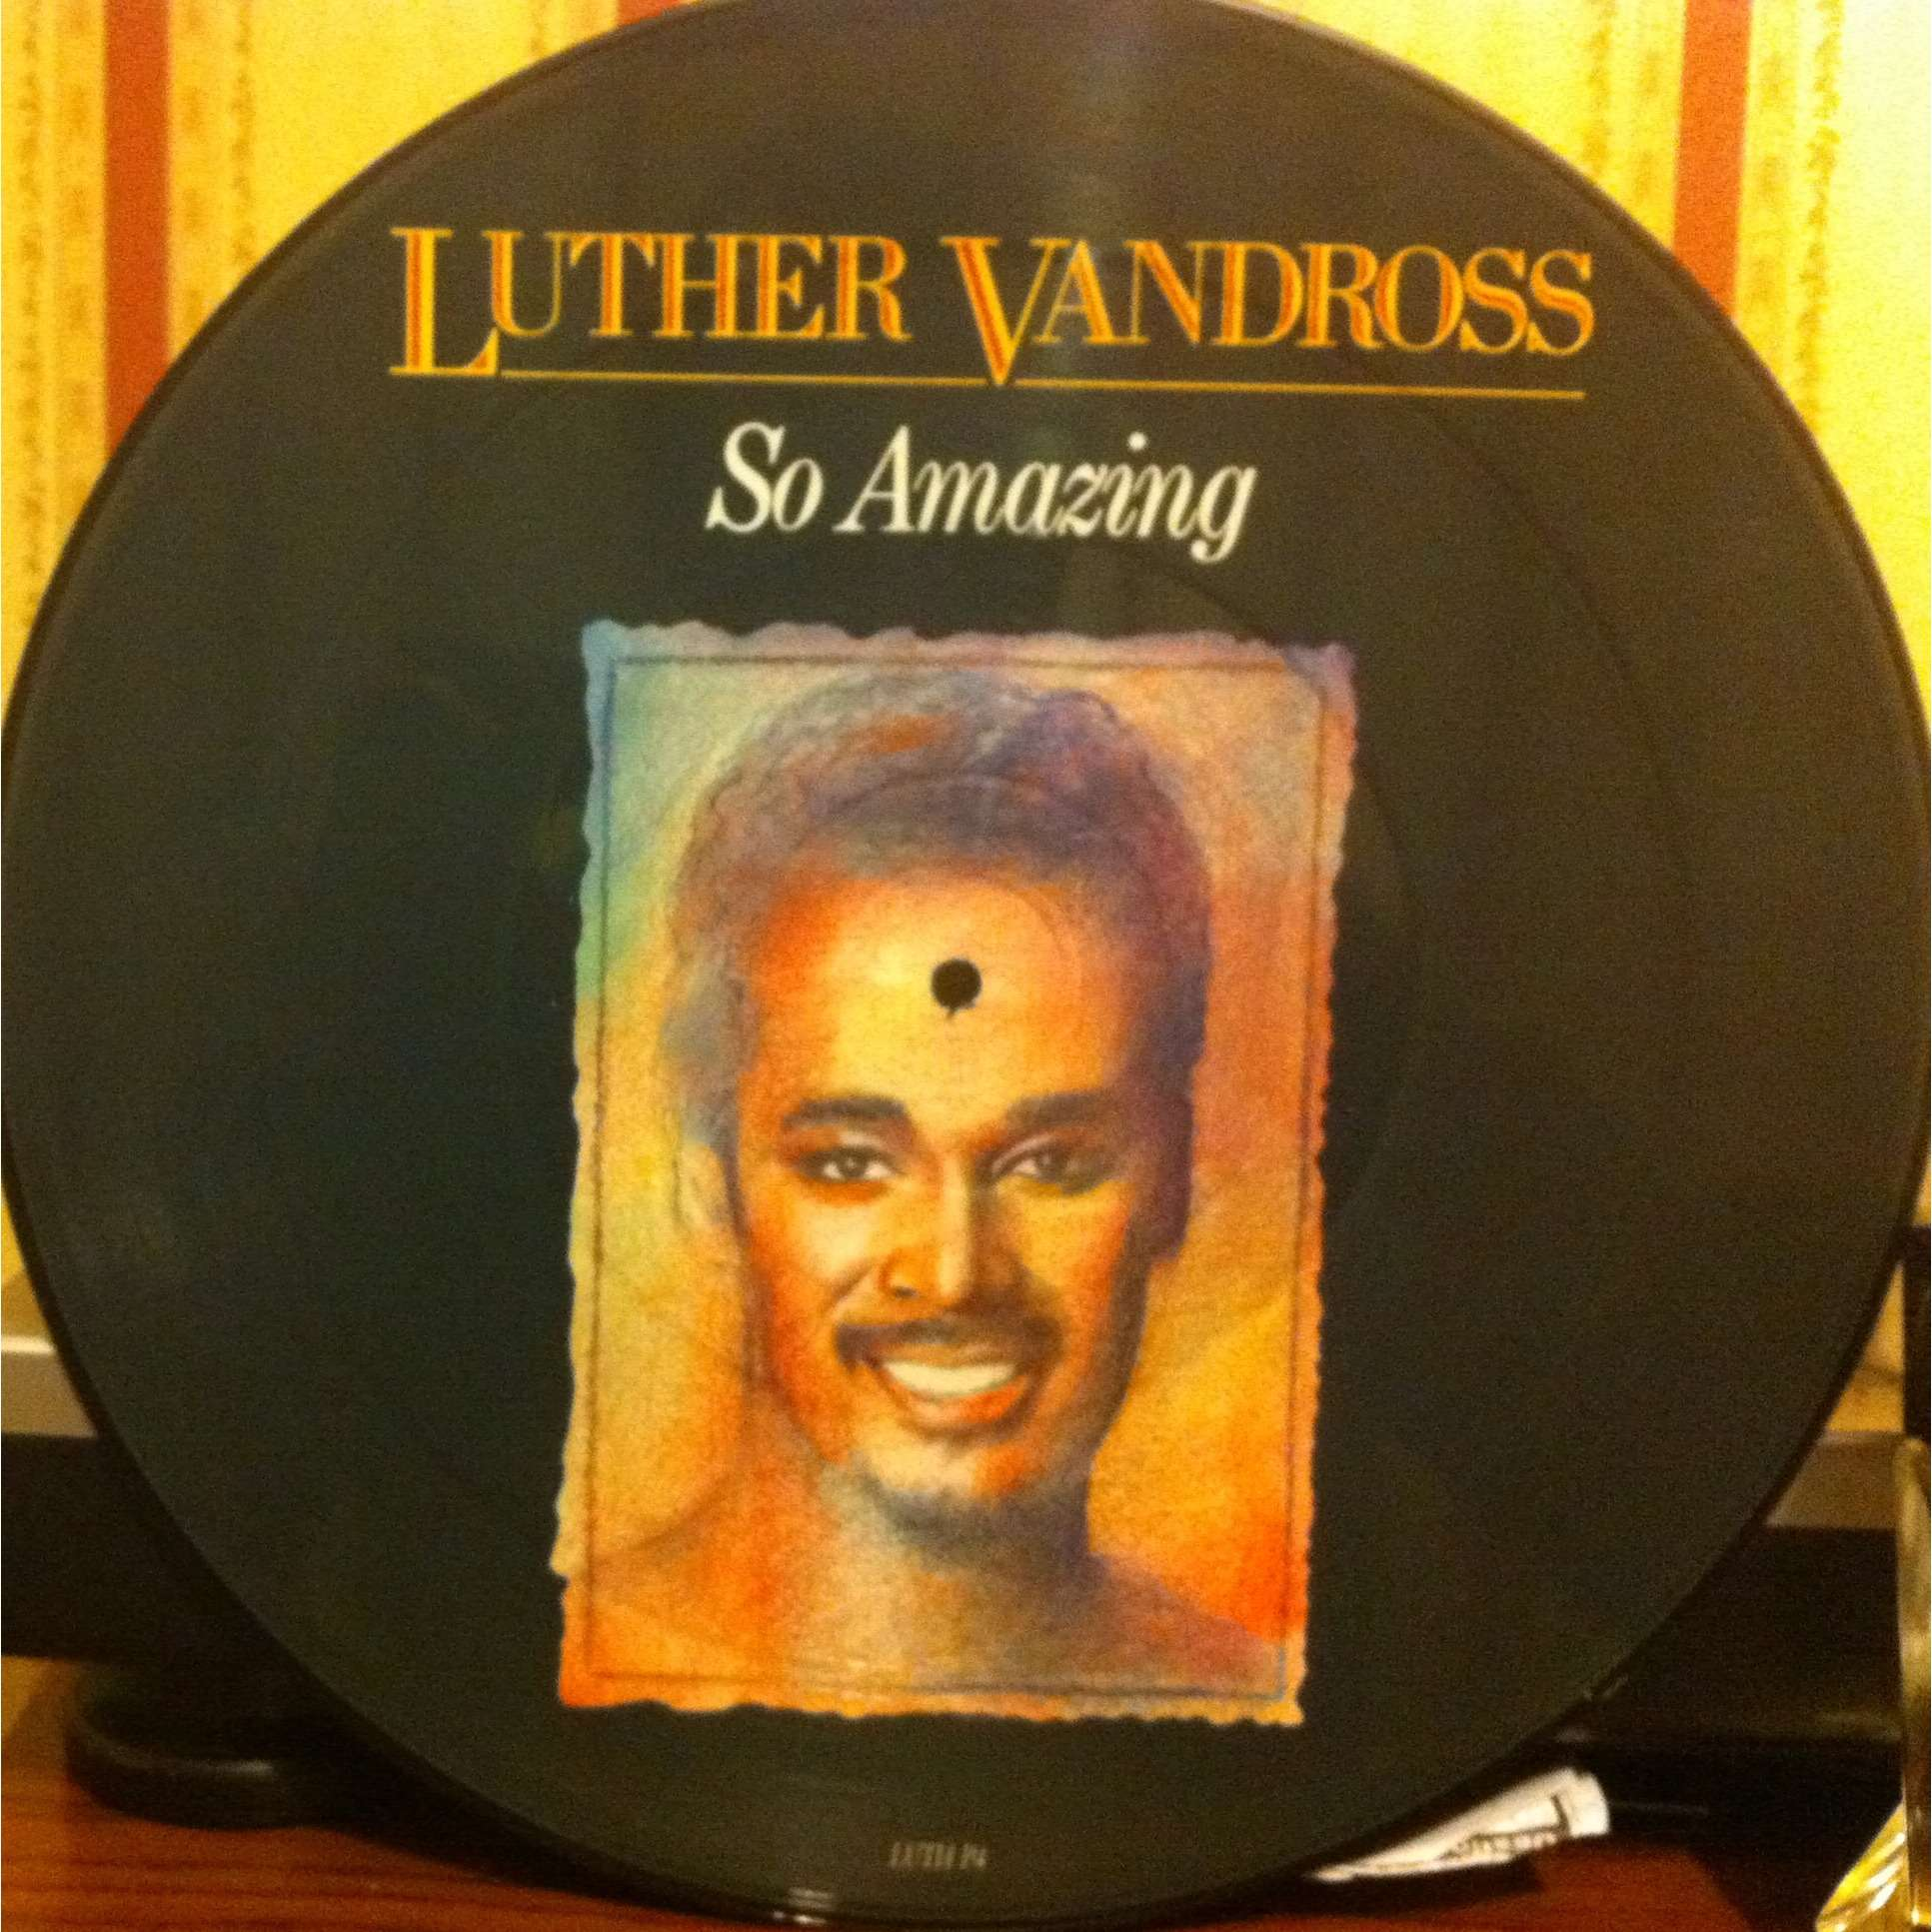 So Amazing: LUTHER VANDROSS So Amazing, 12 INCH 45 RPM For Sale On